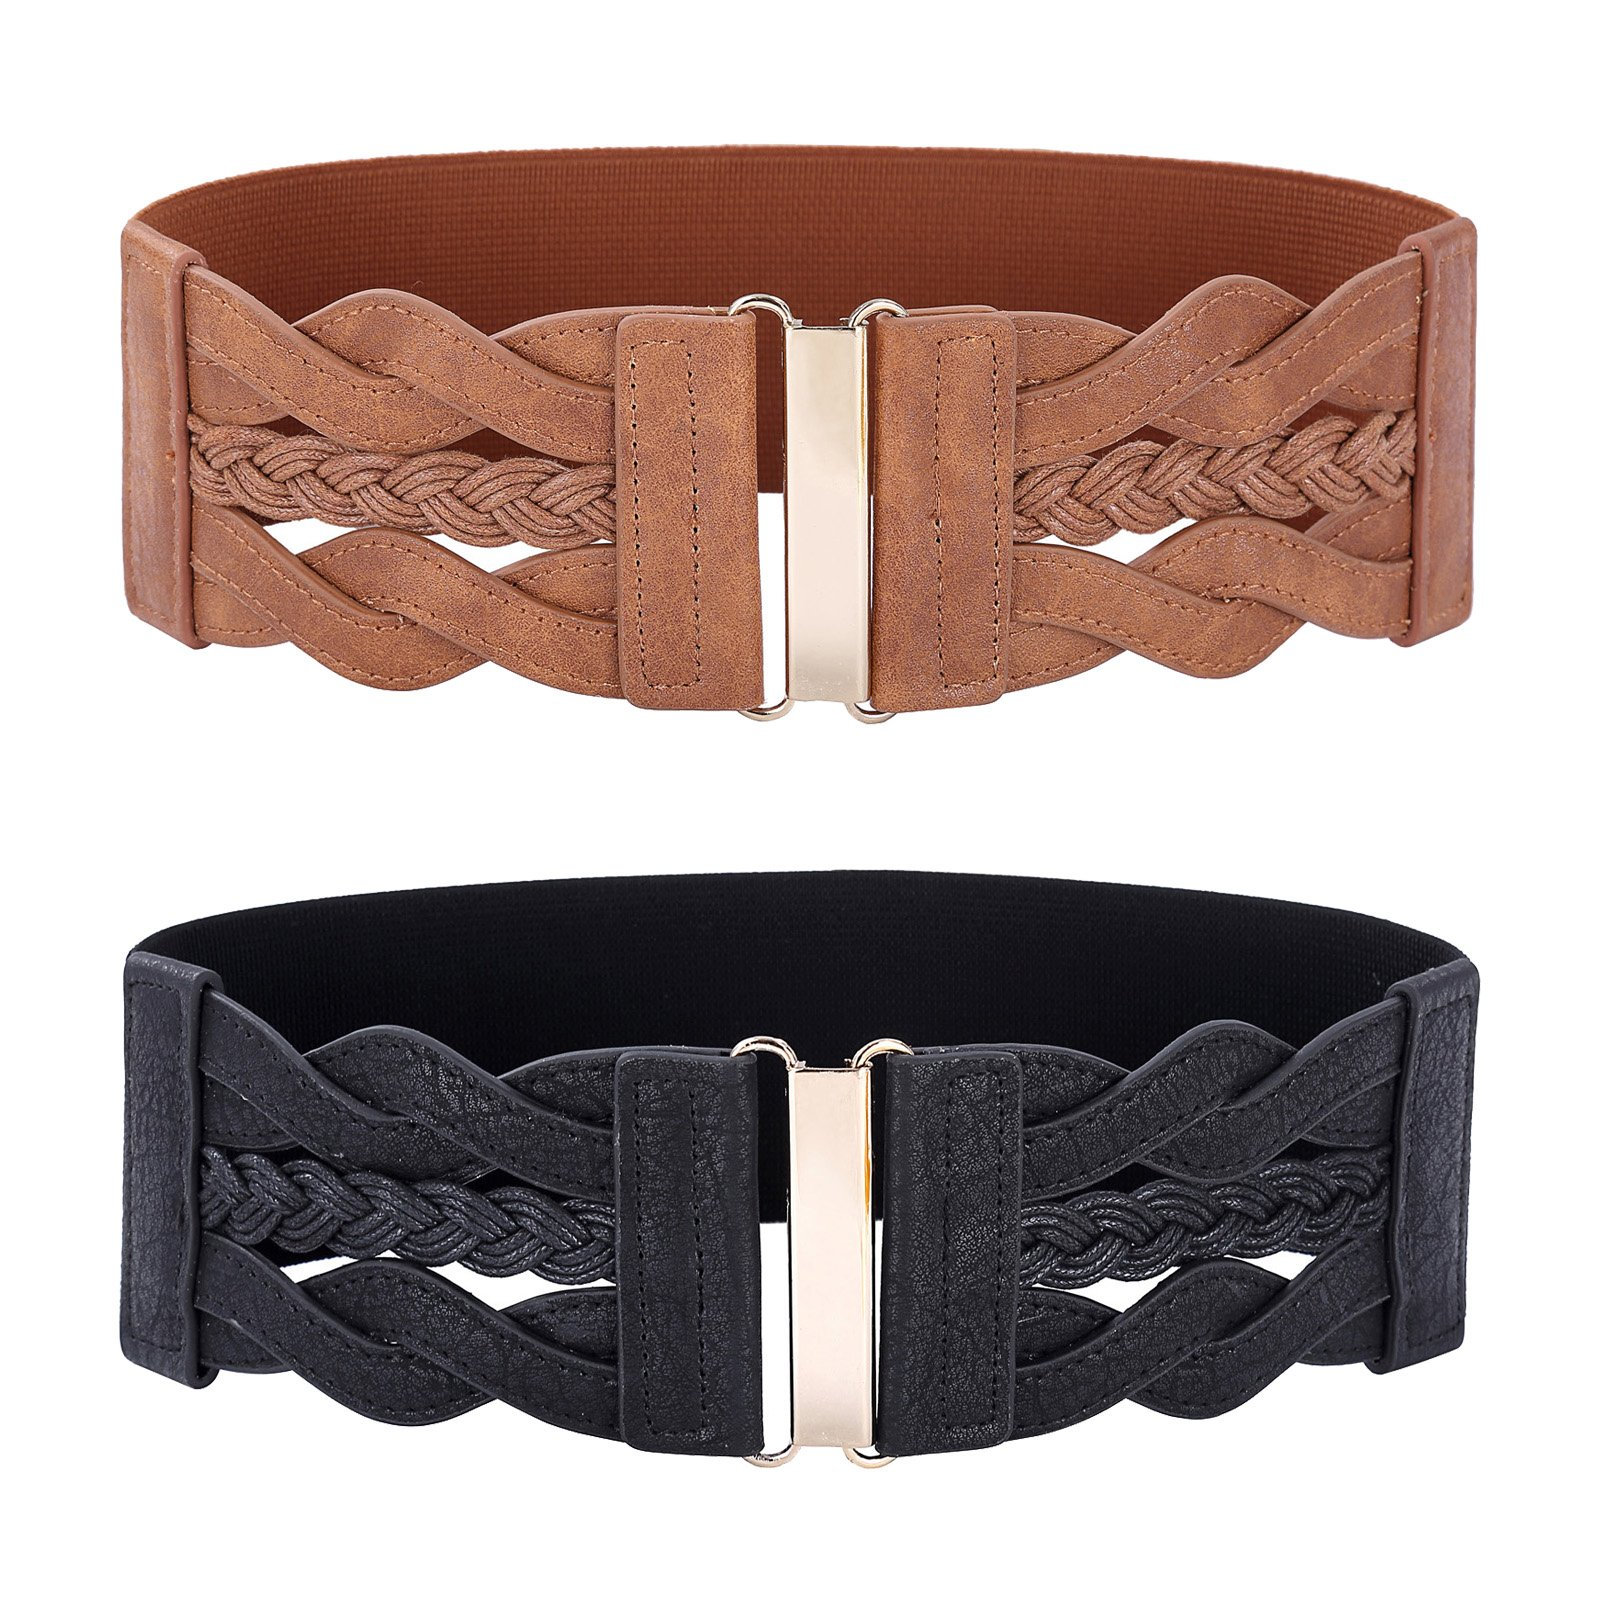 Women Fashion Belts for Dress Wide Elastic Stretch Belt Brown and Black Size M by PAUL JONES